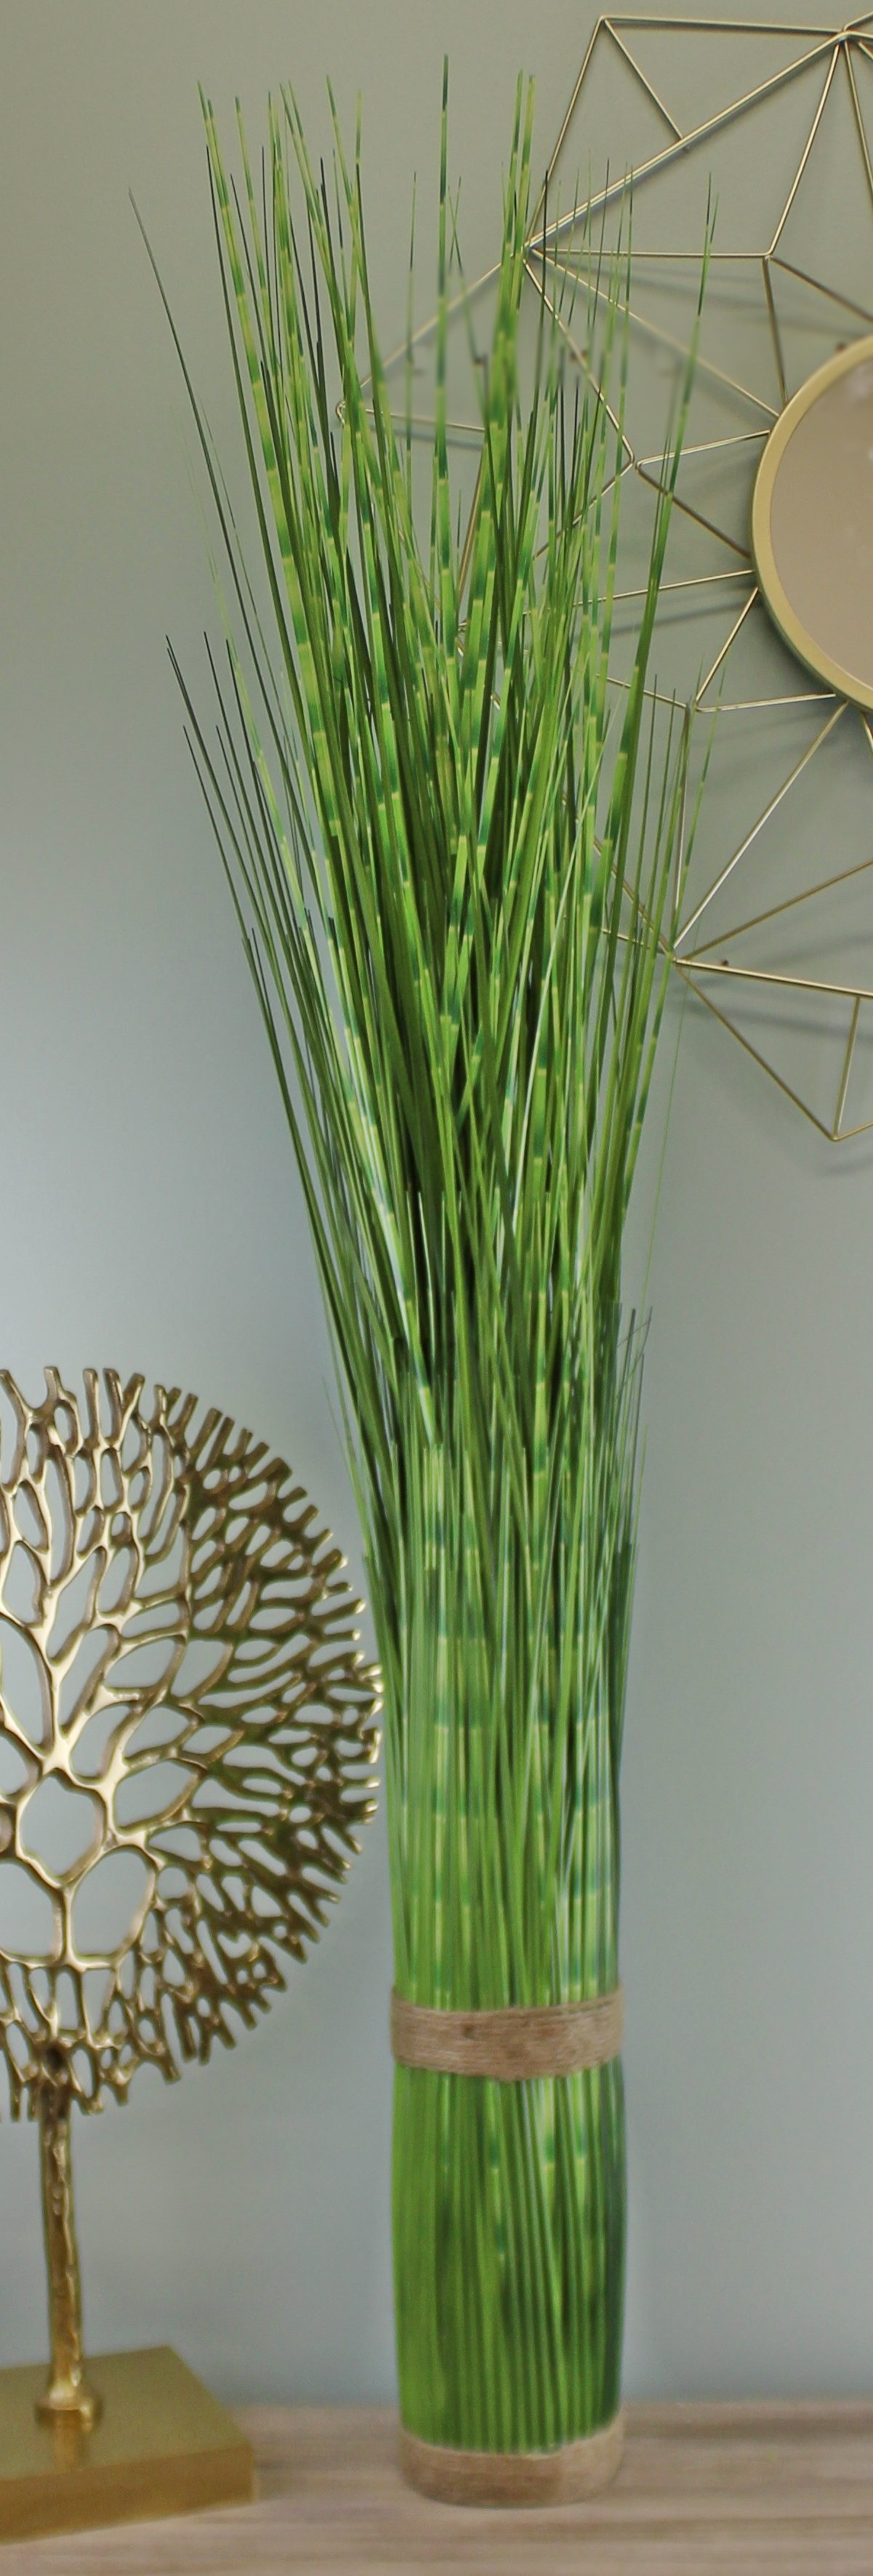 Large Bamboo Spray, 116cm